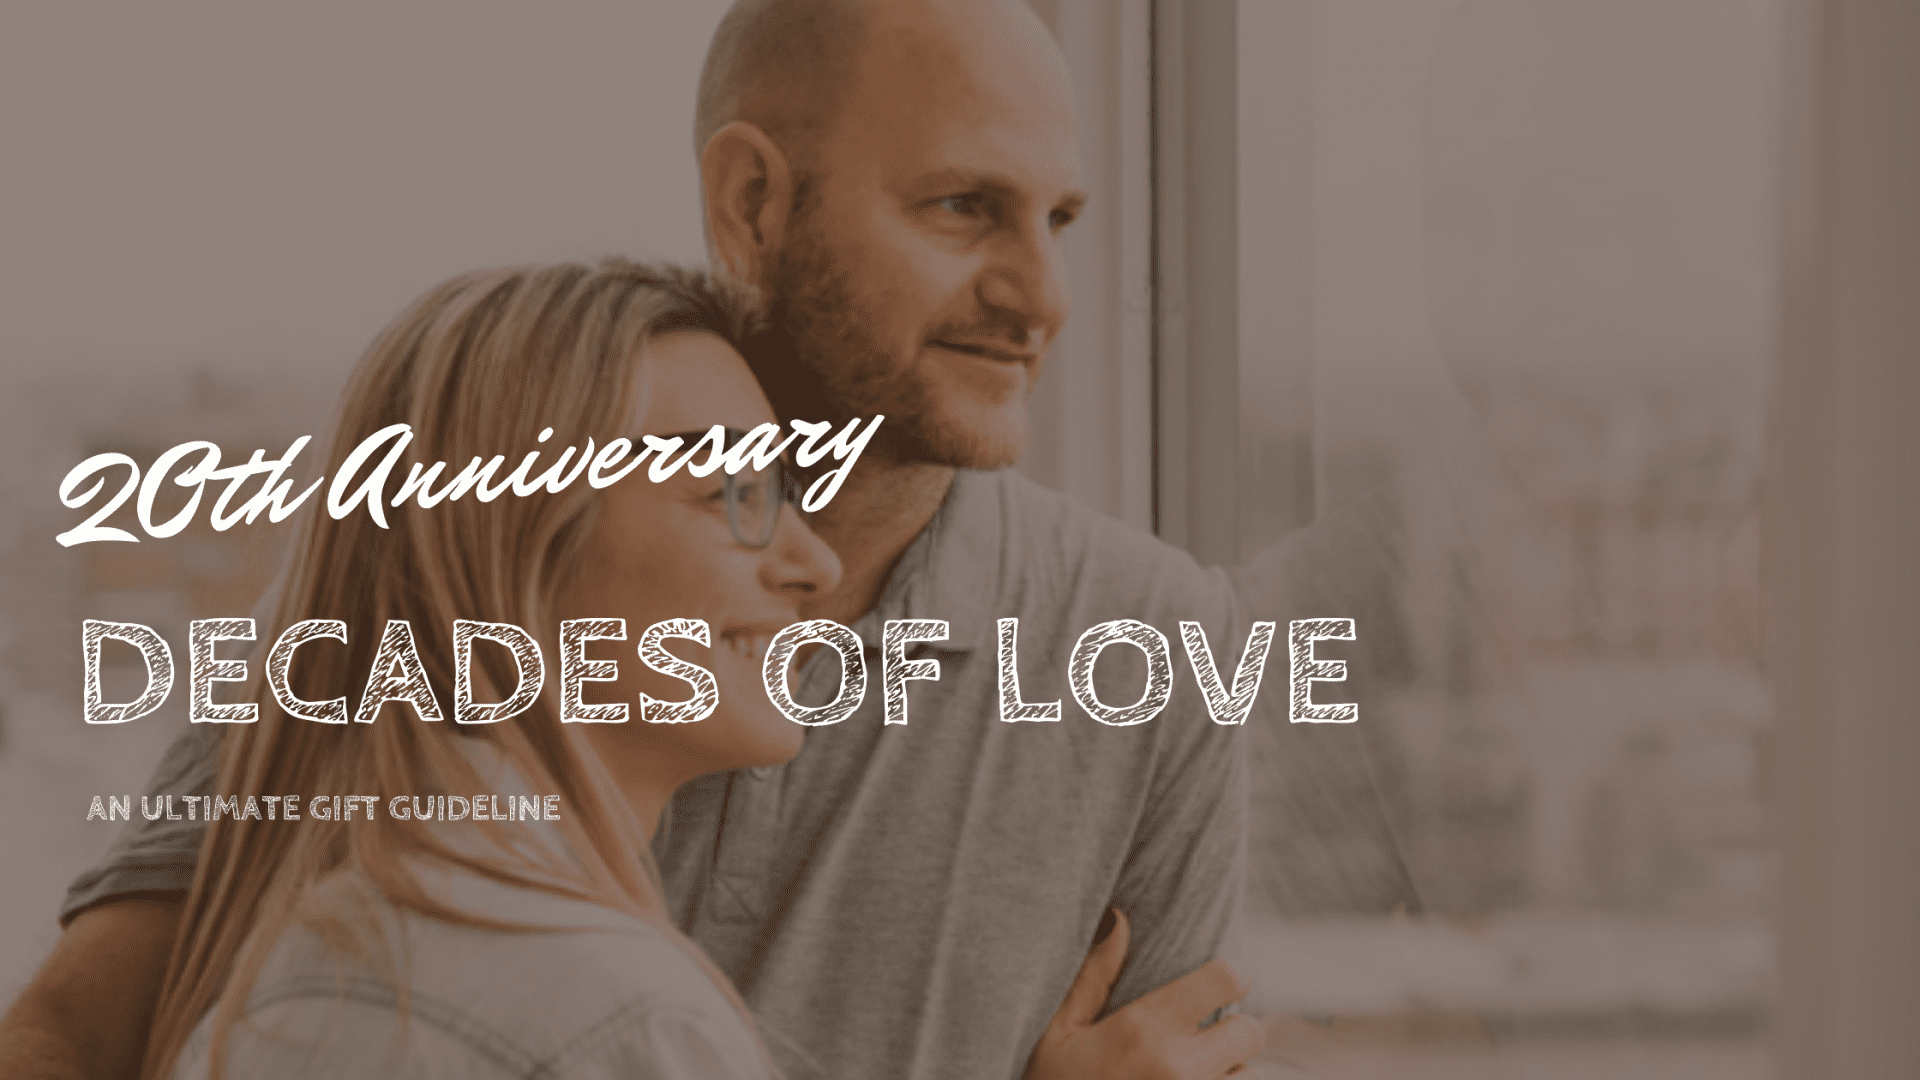 35+ 20th Anniversary Gift Ideas to Celebrate Decades of Love with Your Spouse (2021)